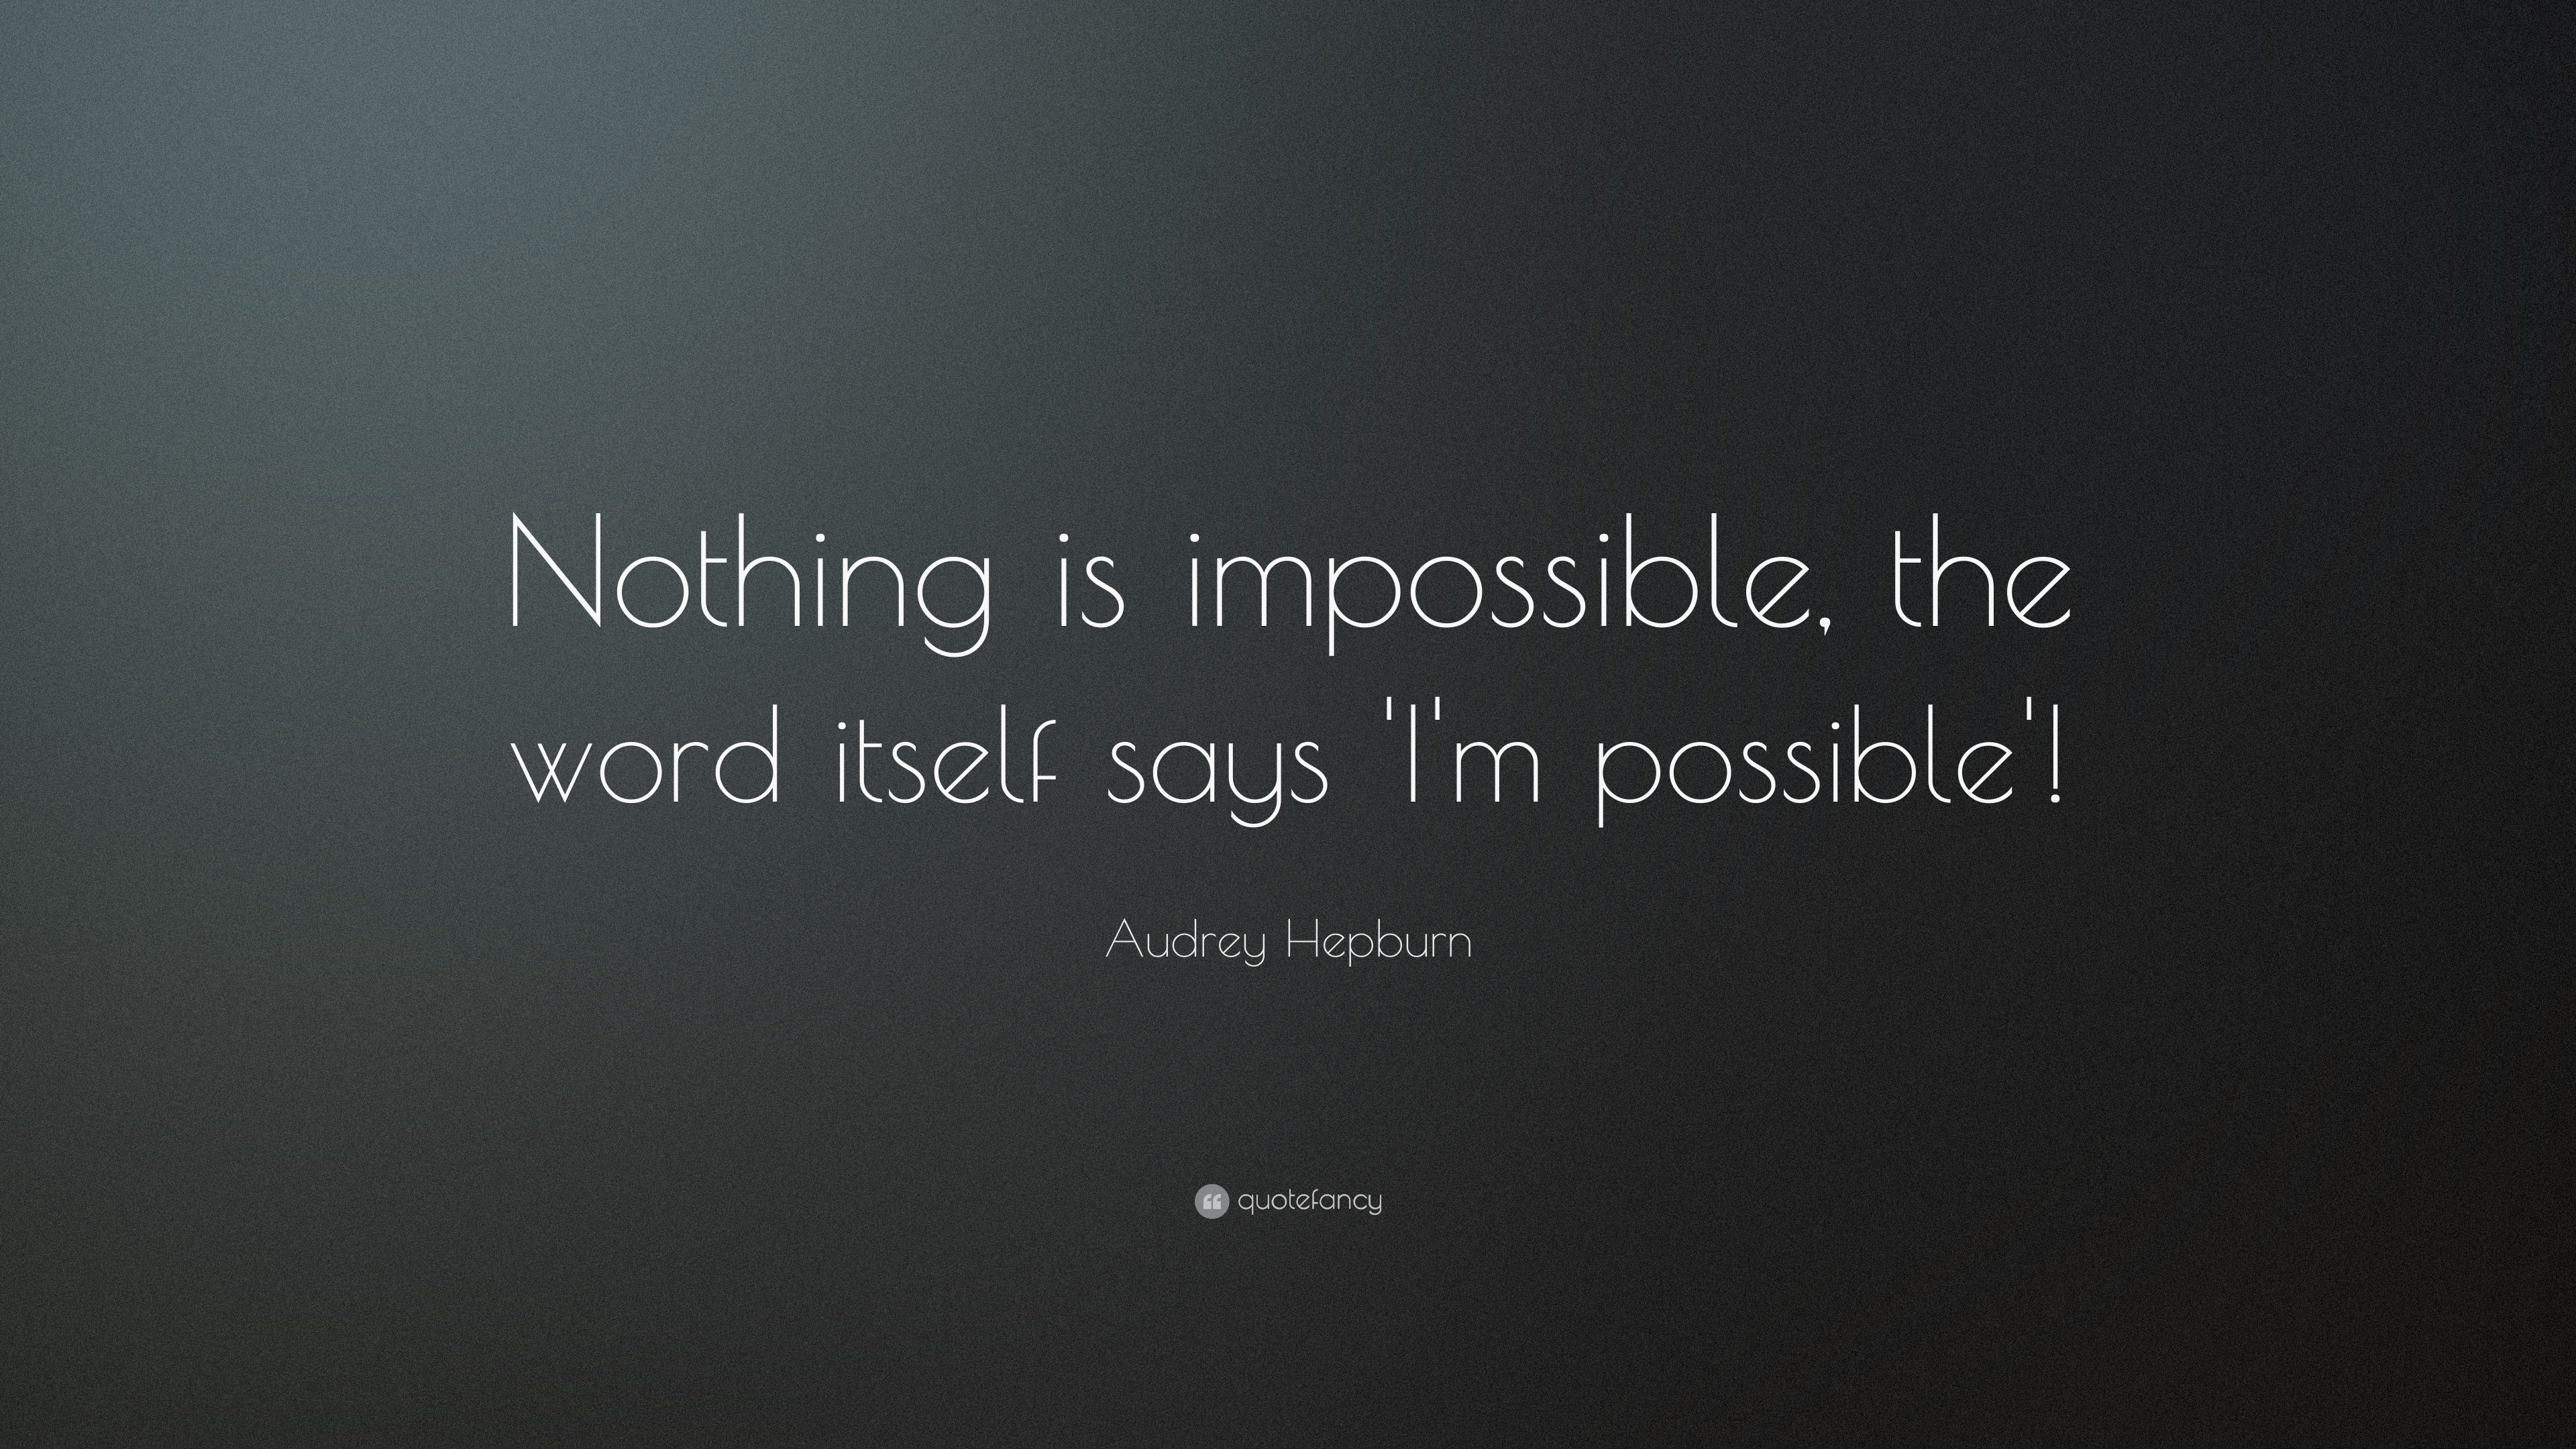 quotes about strength quotefancy quotes about strength nothing is impossible the word itself says i